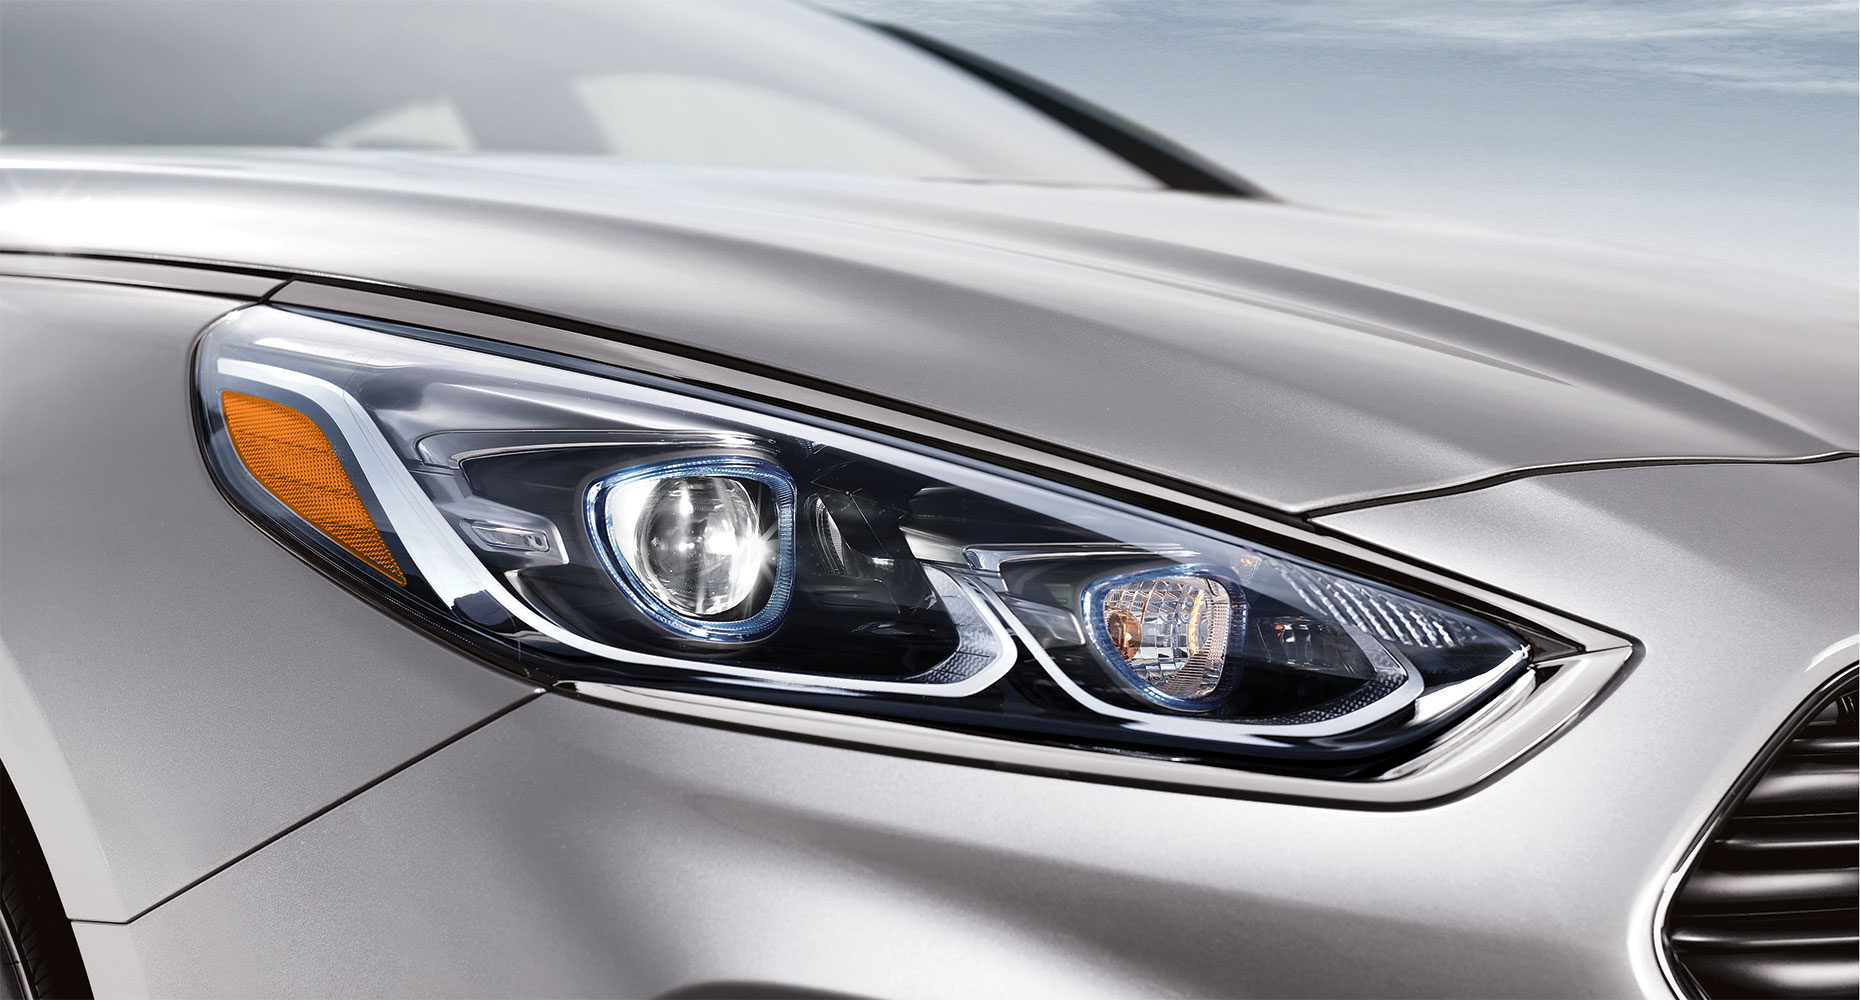 LED headlights with High Beam Assist